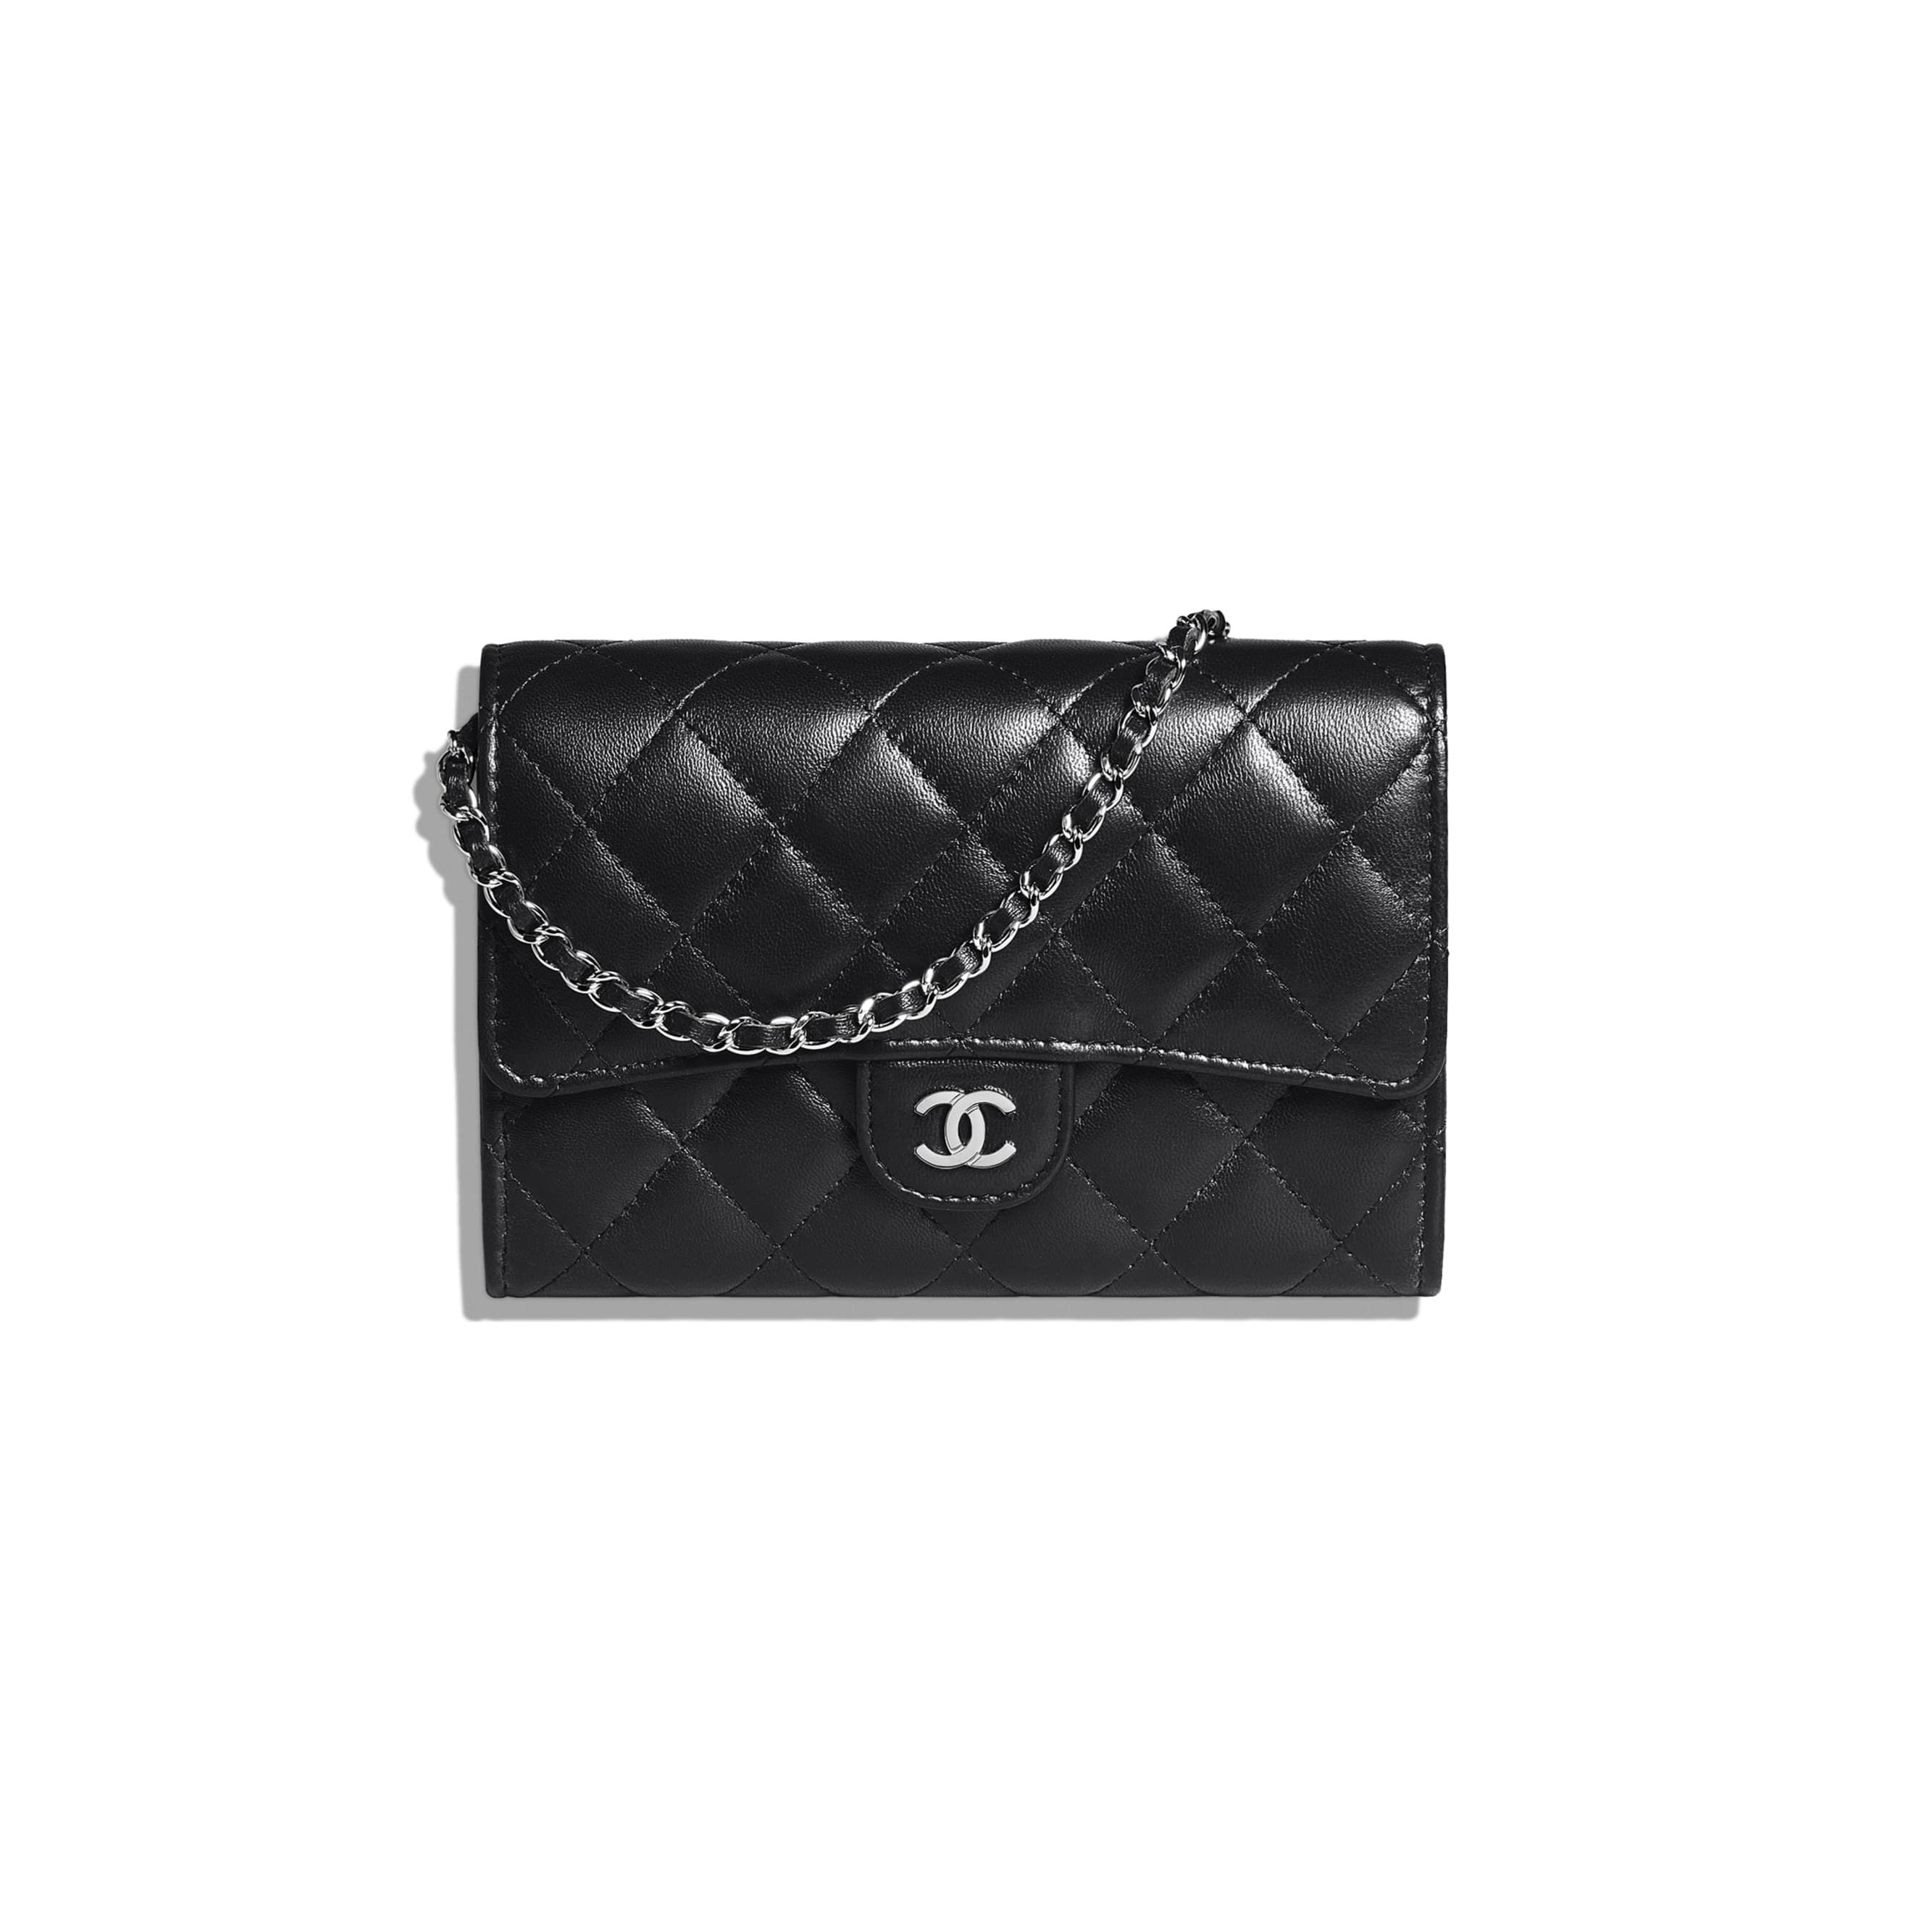 1fd57a839c9b99 Lambskin & Silver-Tone Metal Black Classic Clutch with Chain in 2019 ...